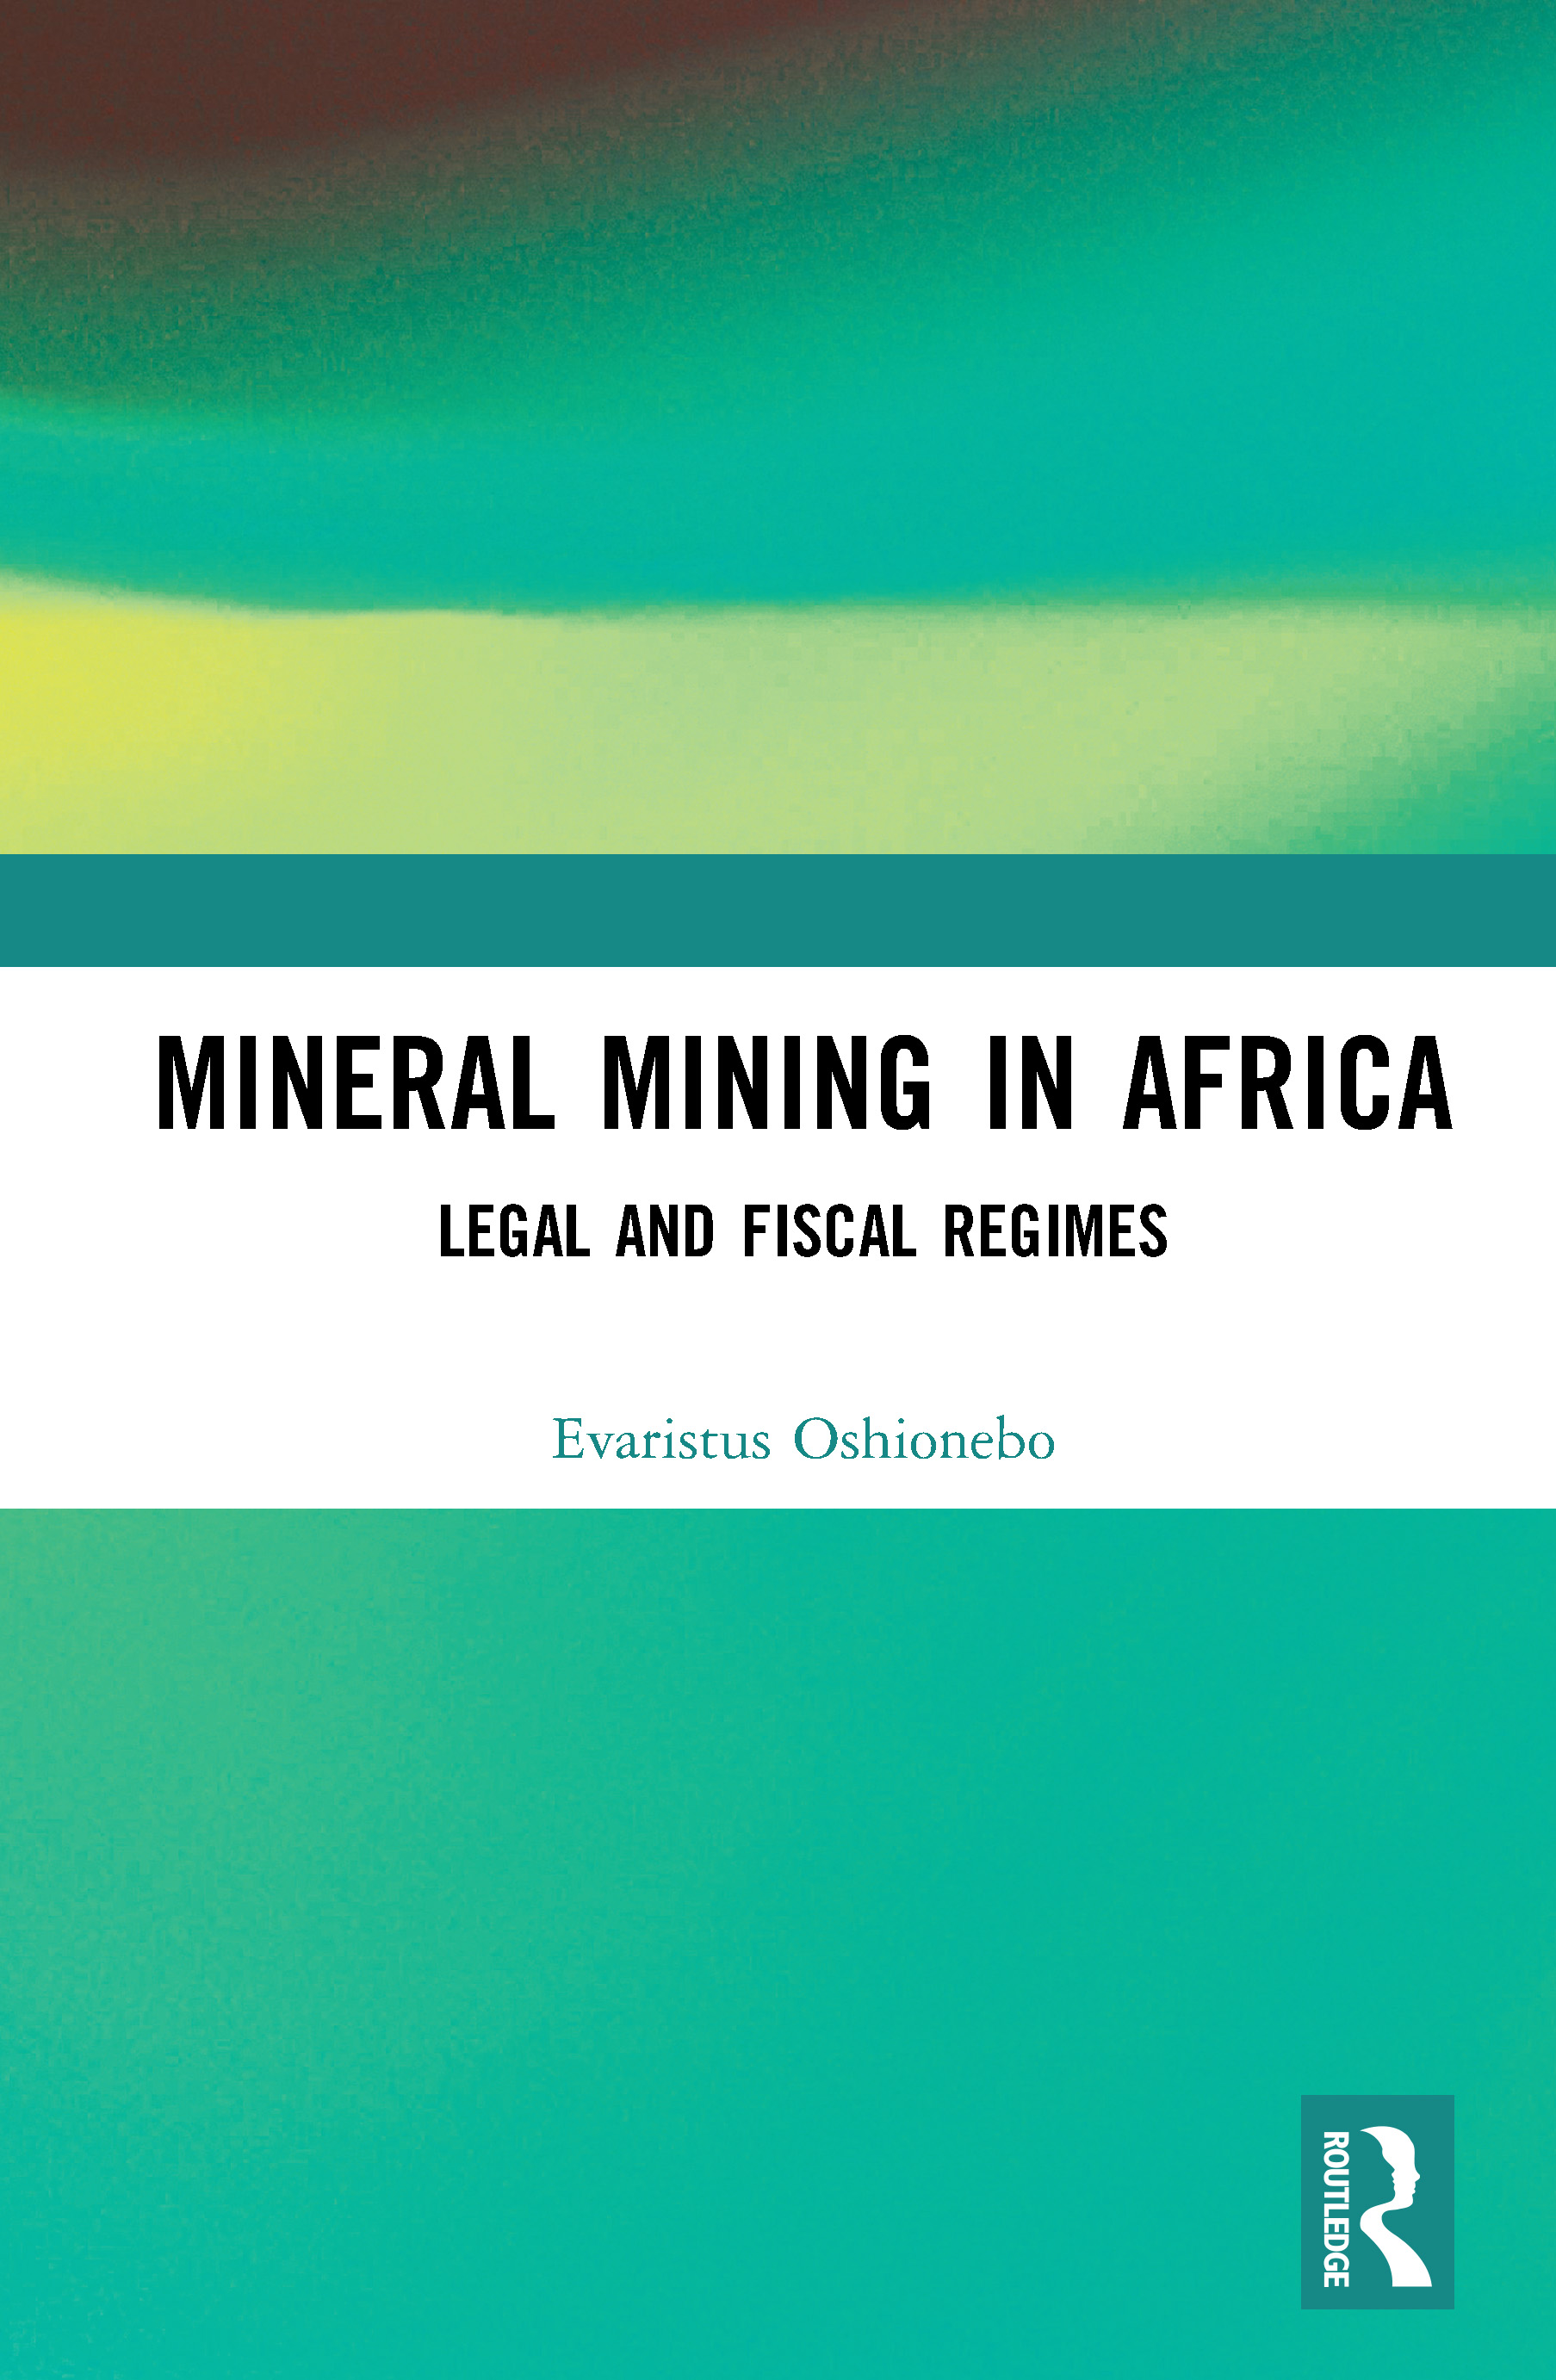 Overview of mining in Africa